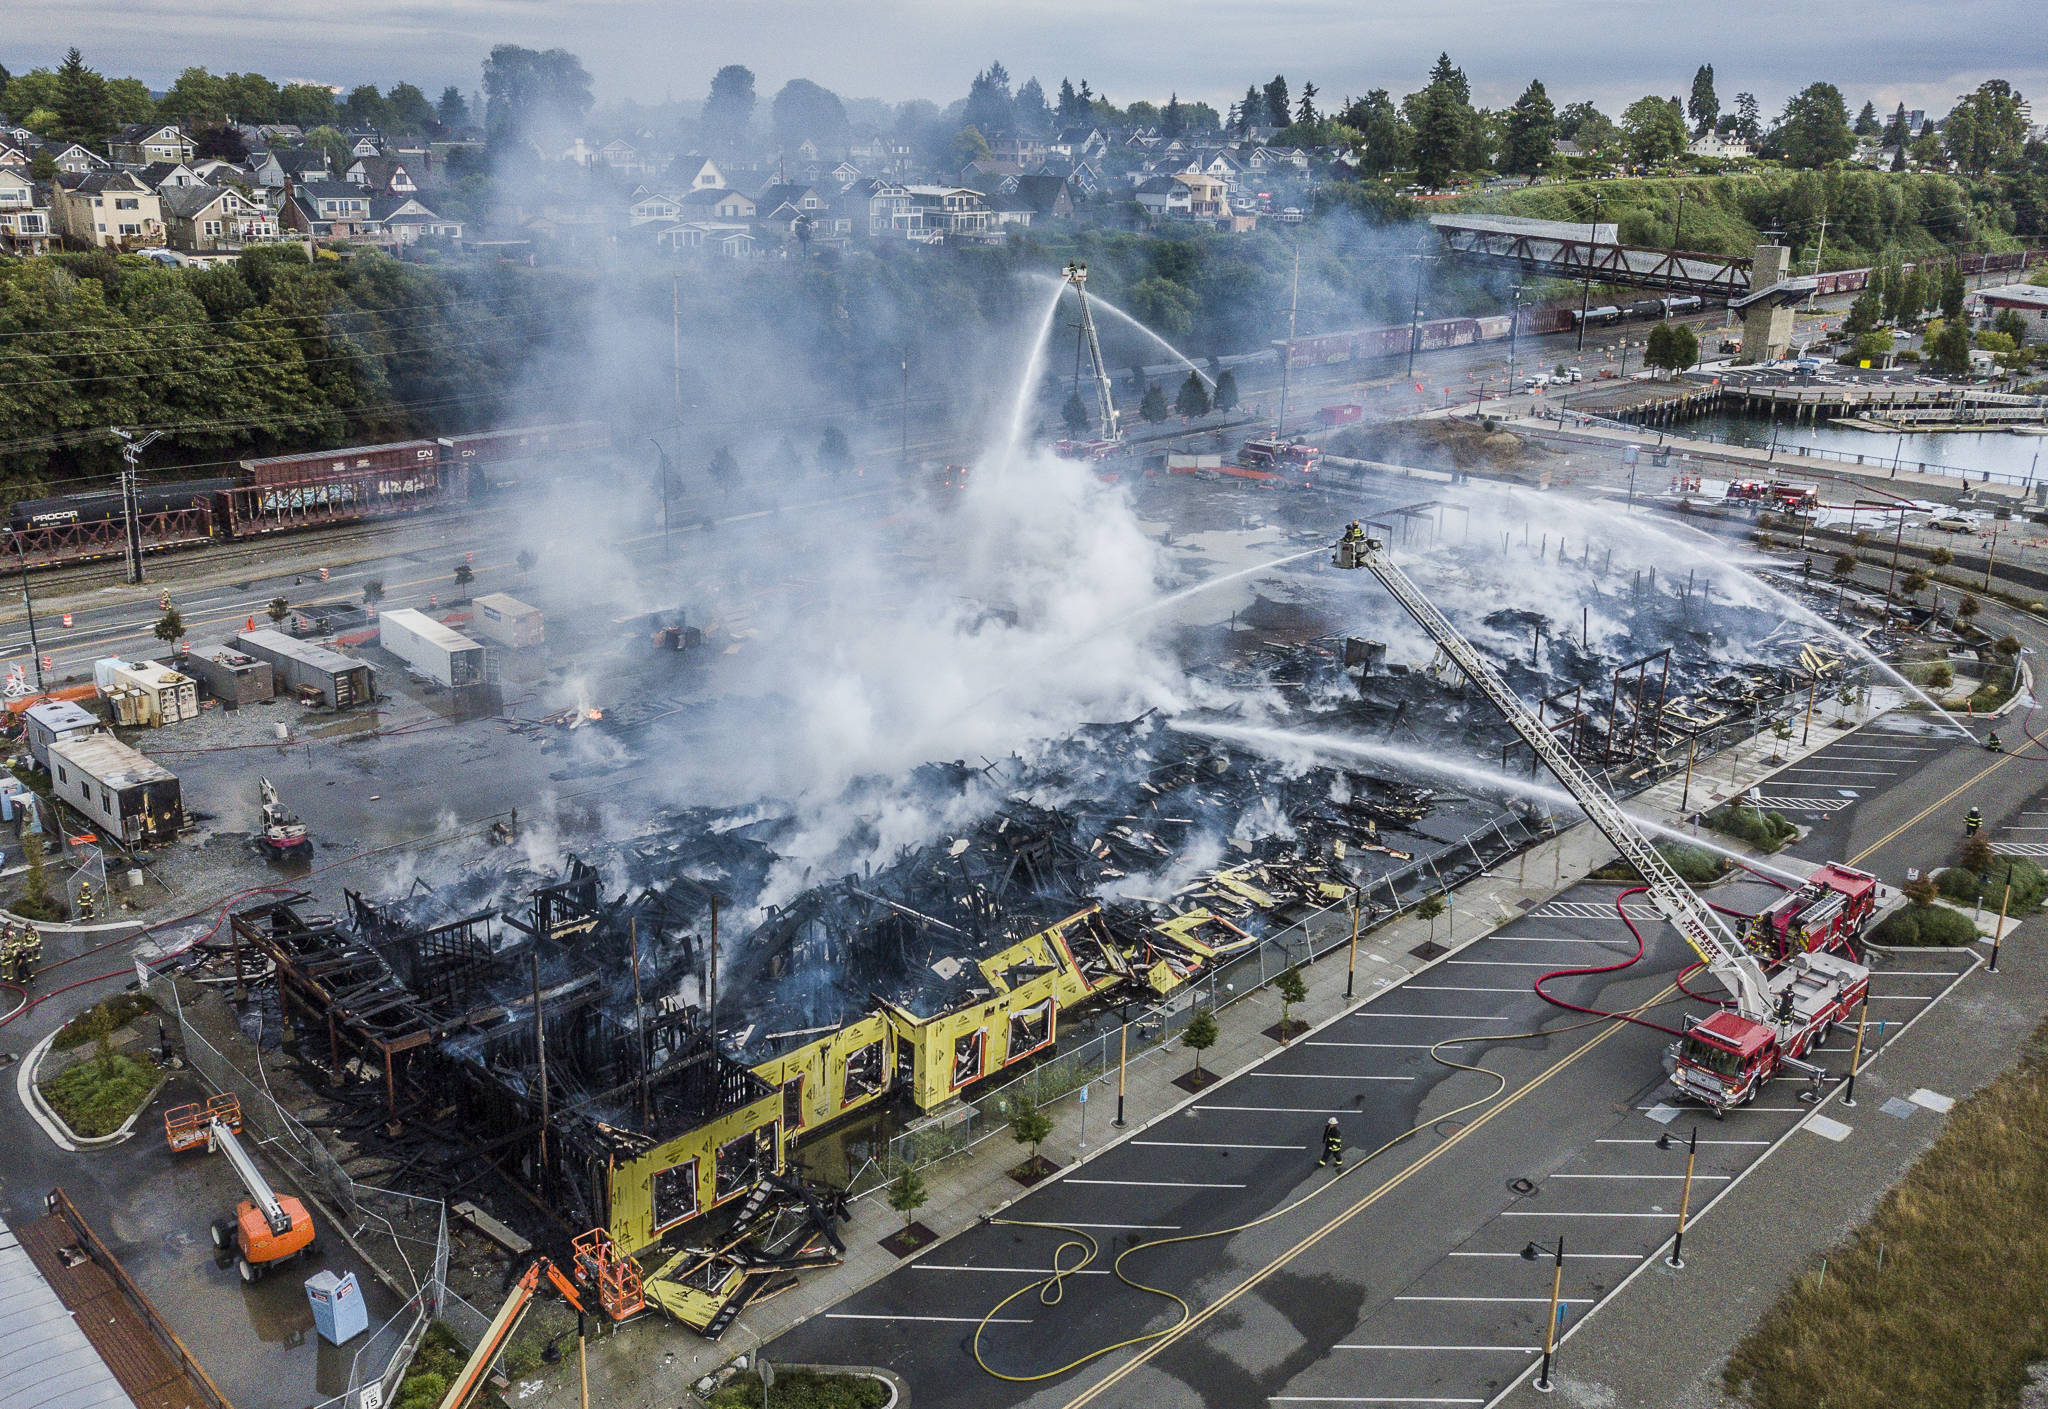 Smoke rises from the under-construction Waterfront Place Apartments that caught fire along Marine View Drive on Thursday in Everett. (Olivia Vanni / The Herald)